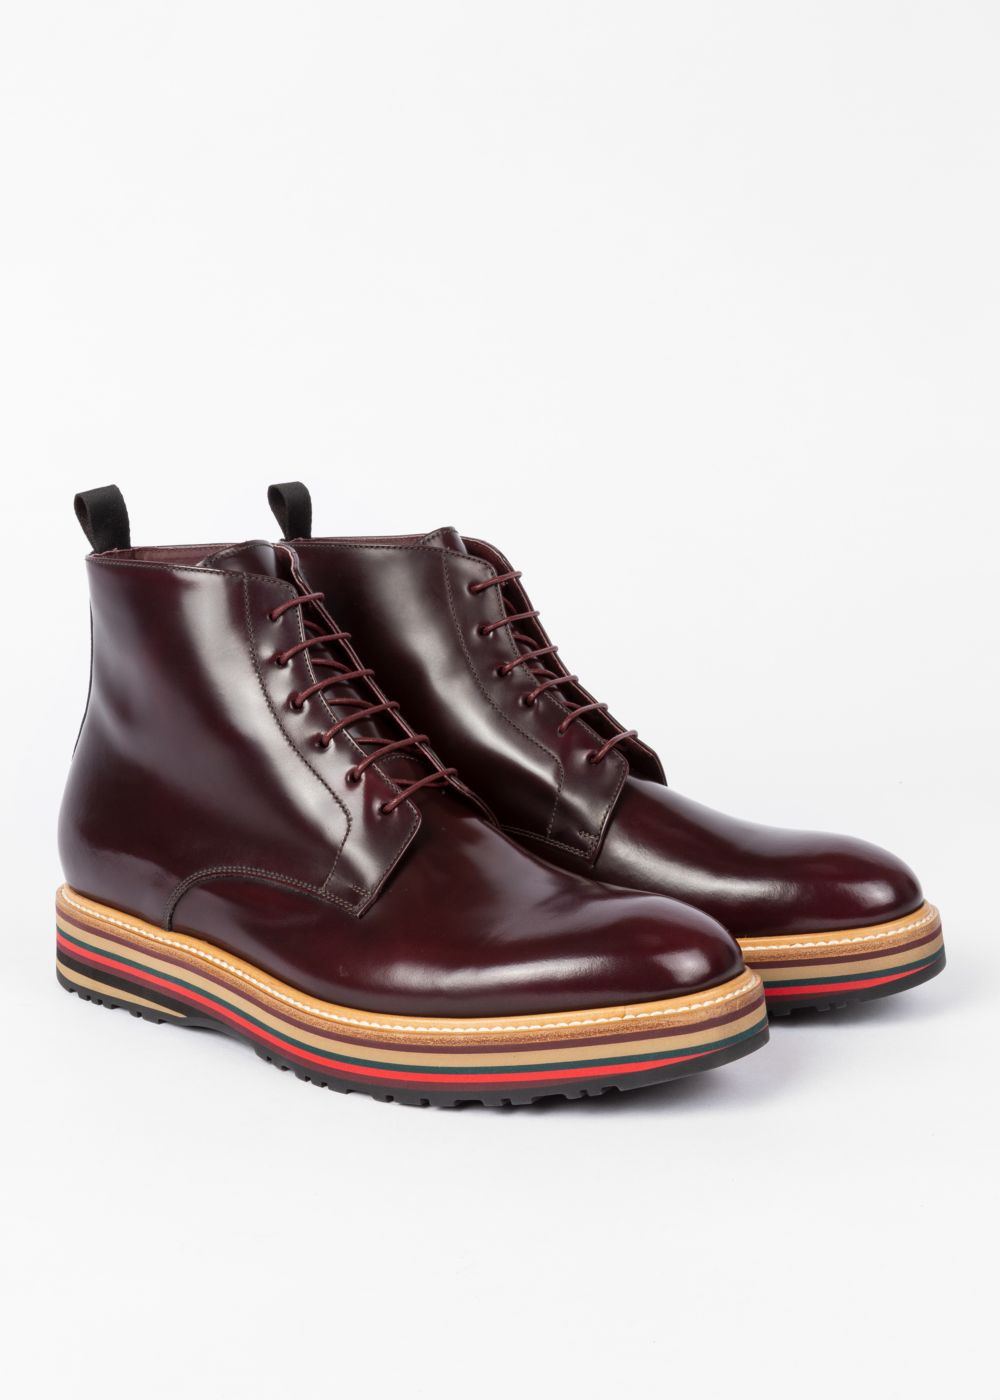 5335cb0fc6390 Mens Bordeaux Leather Corelli Boots With Multi-Coloured Soles by Paul Smith